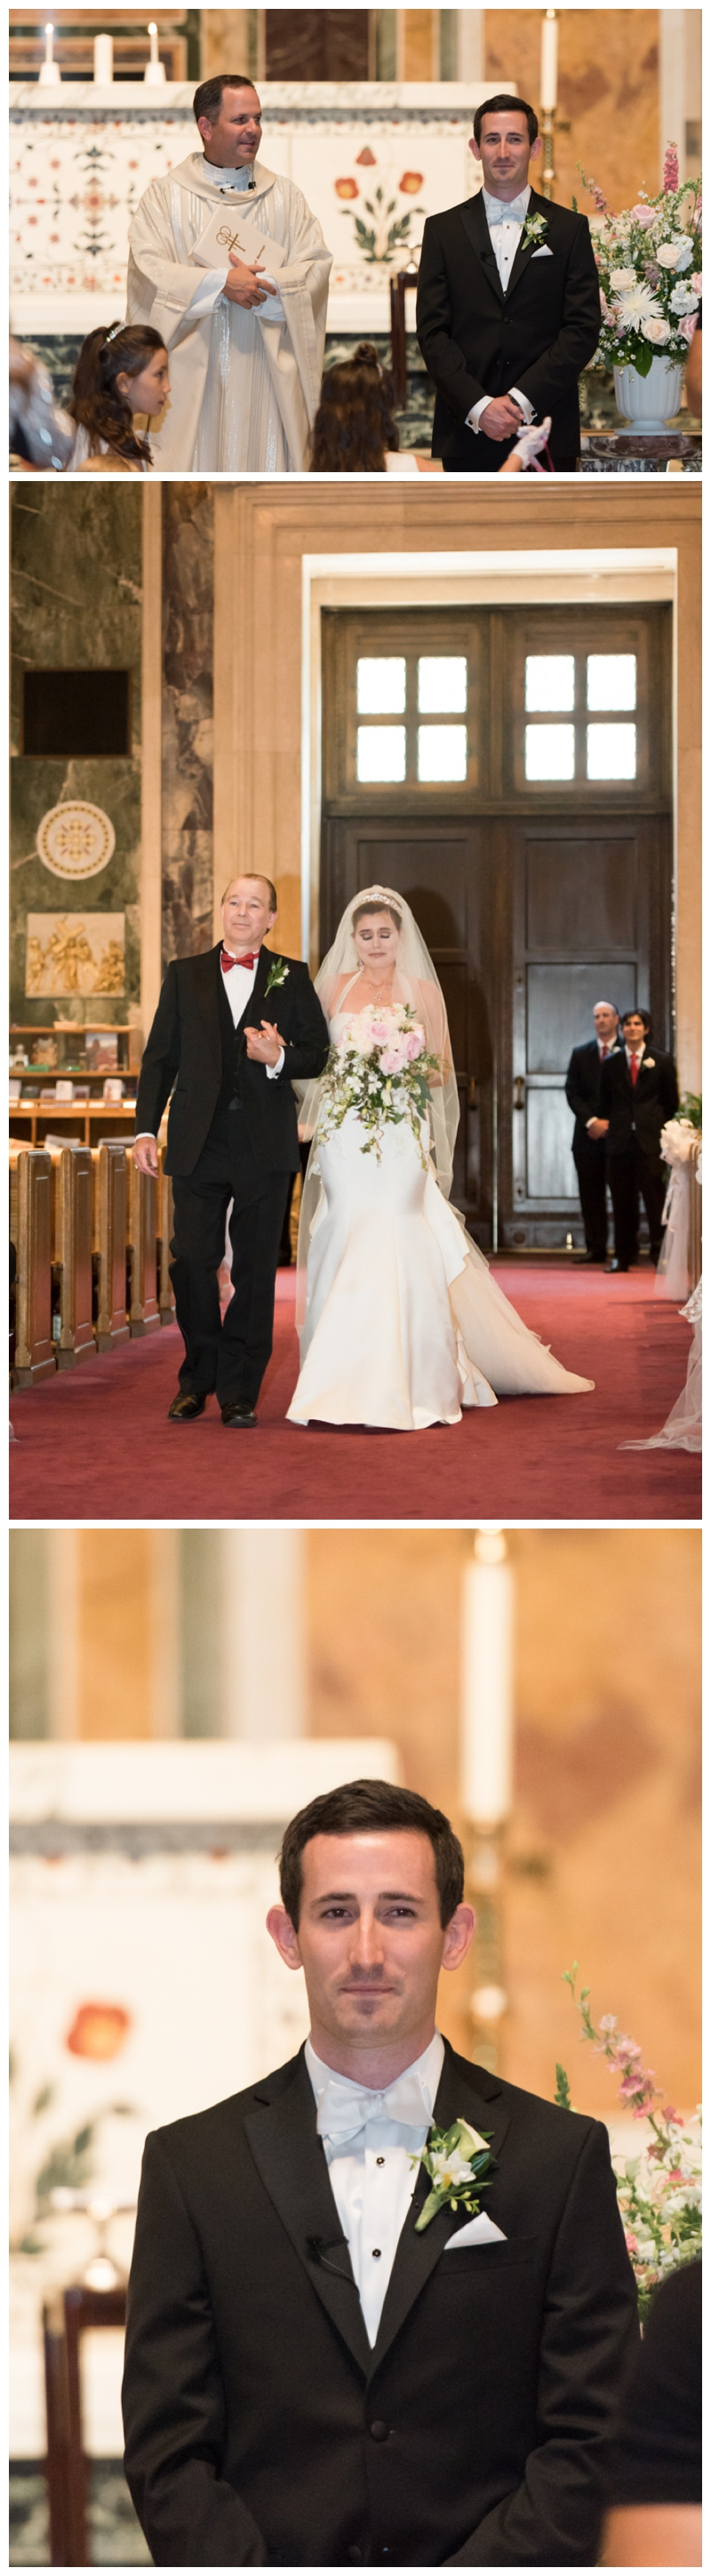 Washington DC Wedding at St Matthew's Cathedral by Rachael Foster Photography_0019.jpg